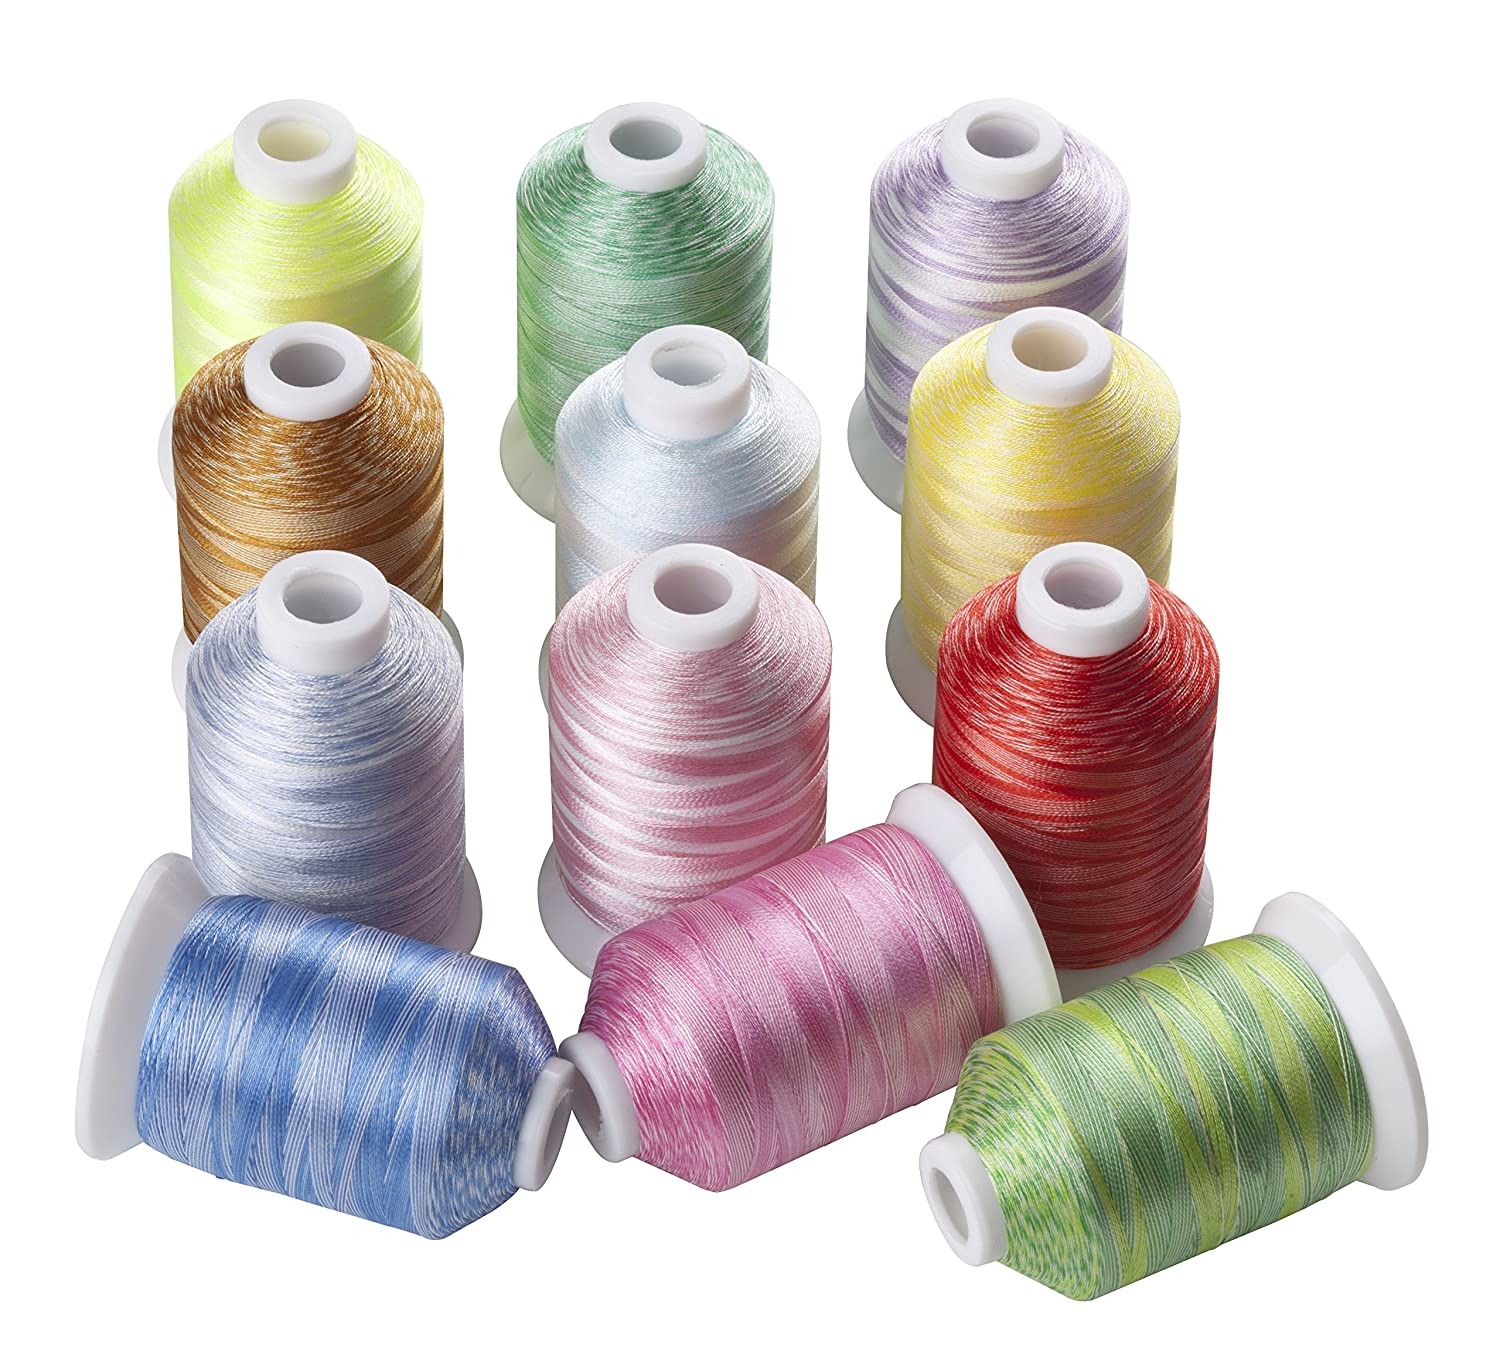 12 Variegated Color Polyester Embroidery Machine Thread for Most Home Embroidery Machines 1100 Yards Each CR THREAD INDUSTRY 4337015920